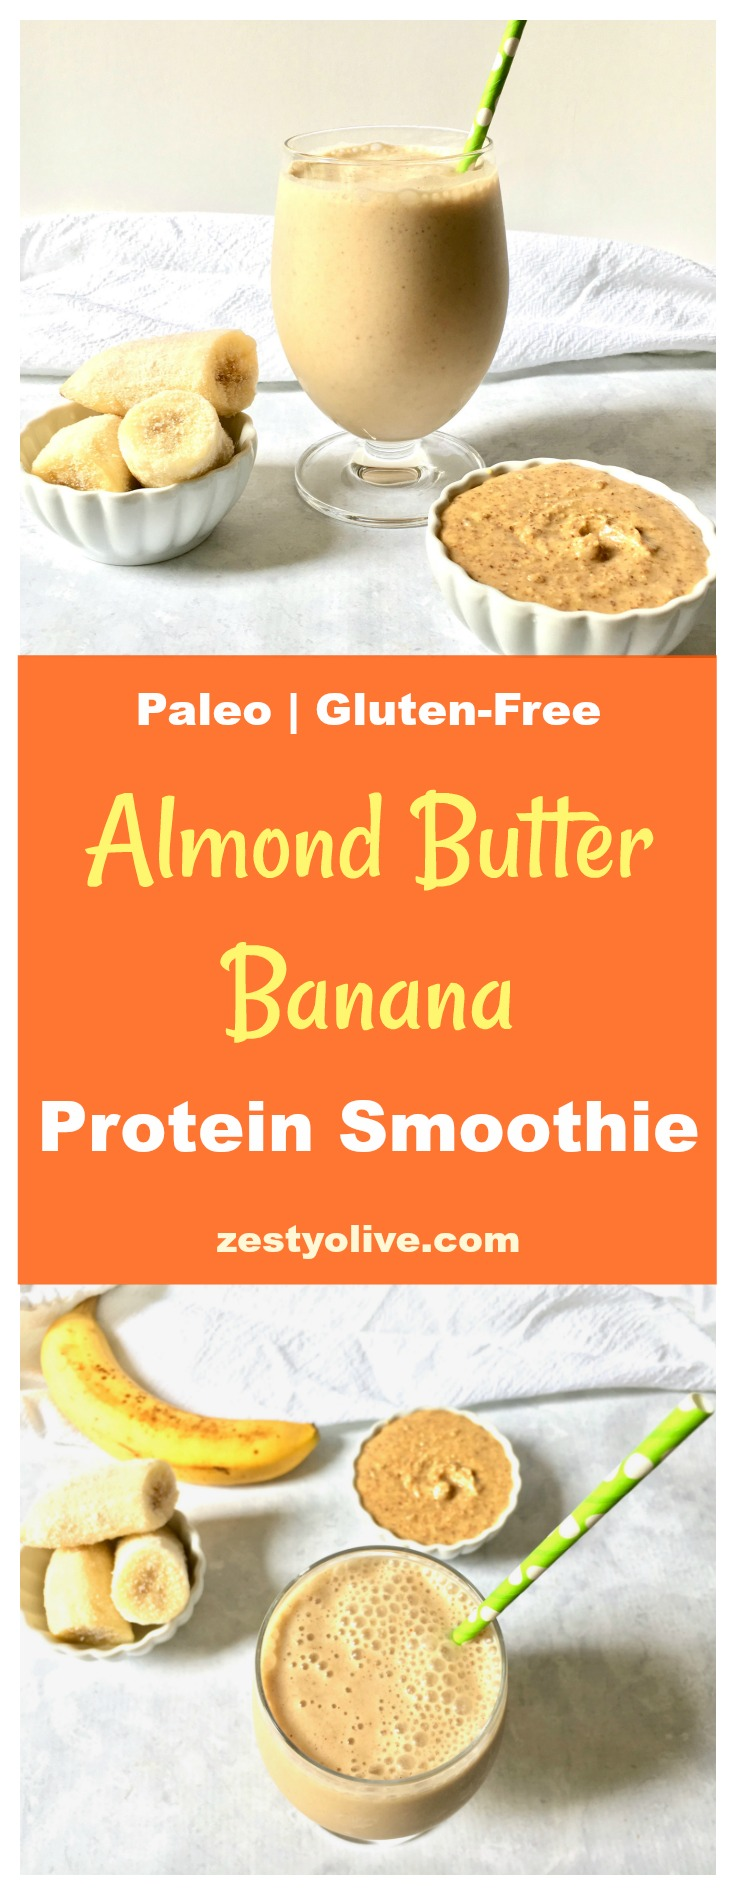 This Almond Butter and Banana Protein Smoothie is healthy, paleo and gluten-free.